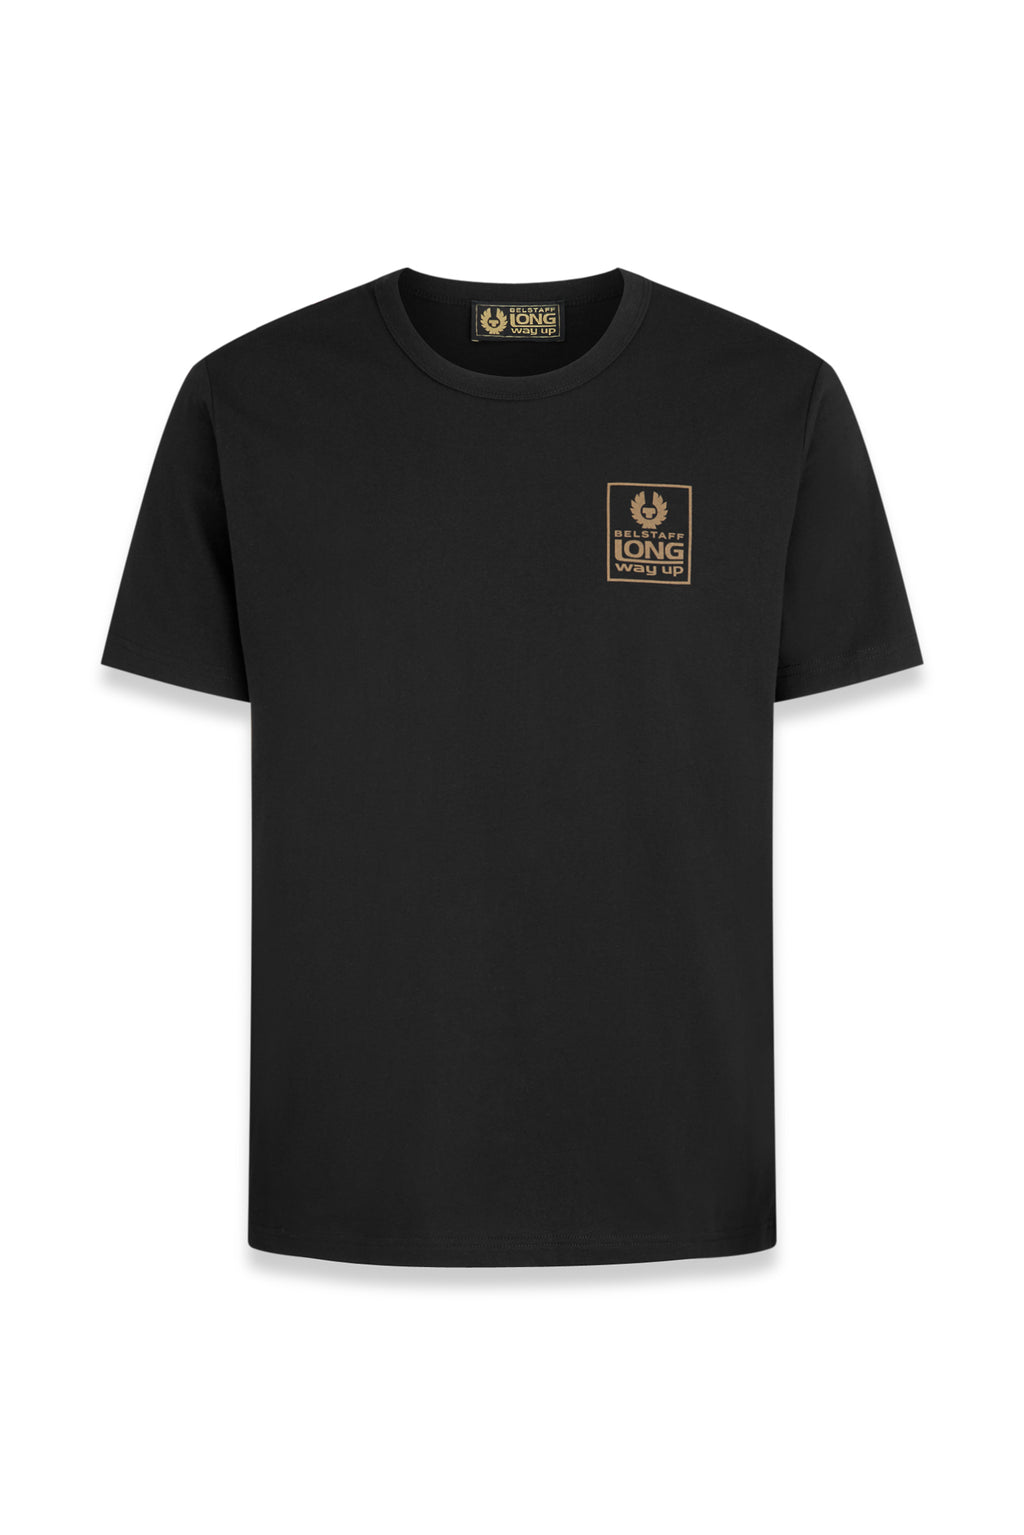 Belstaff - Long Way Up - Small Logo T-shirt - Black